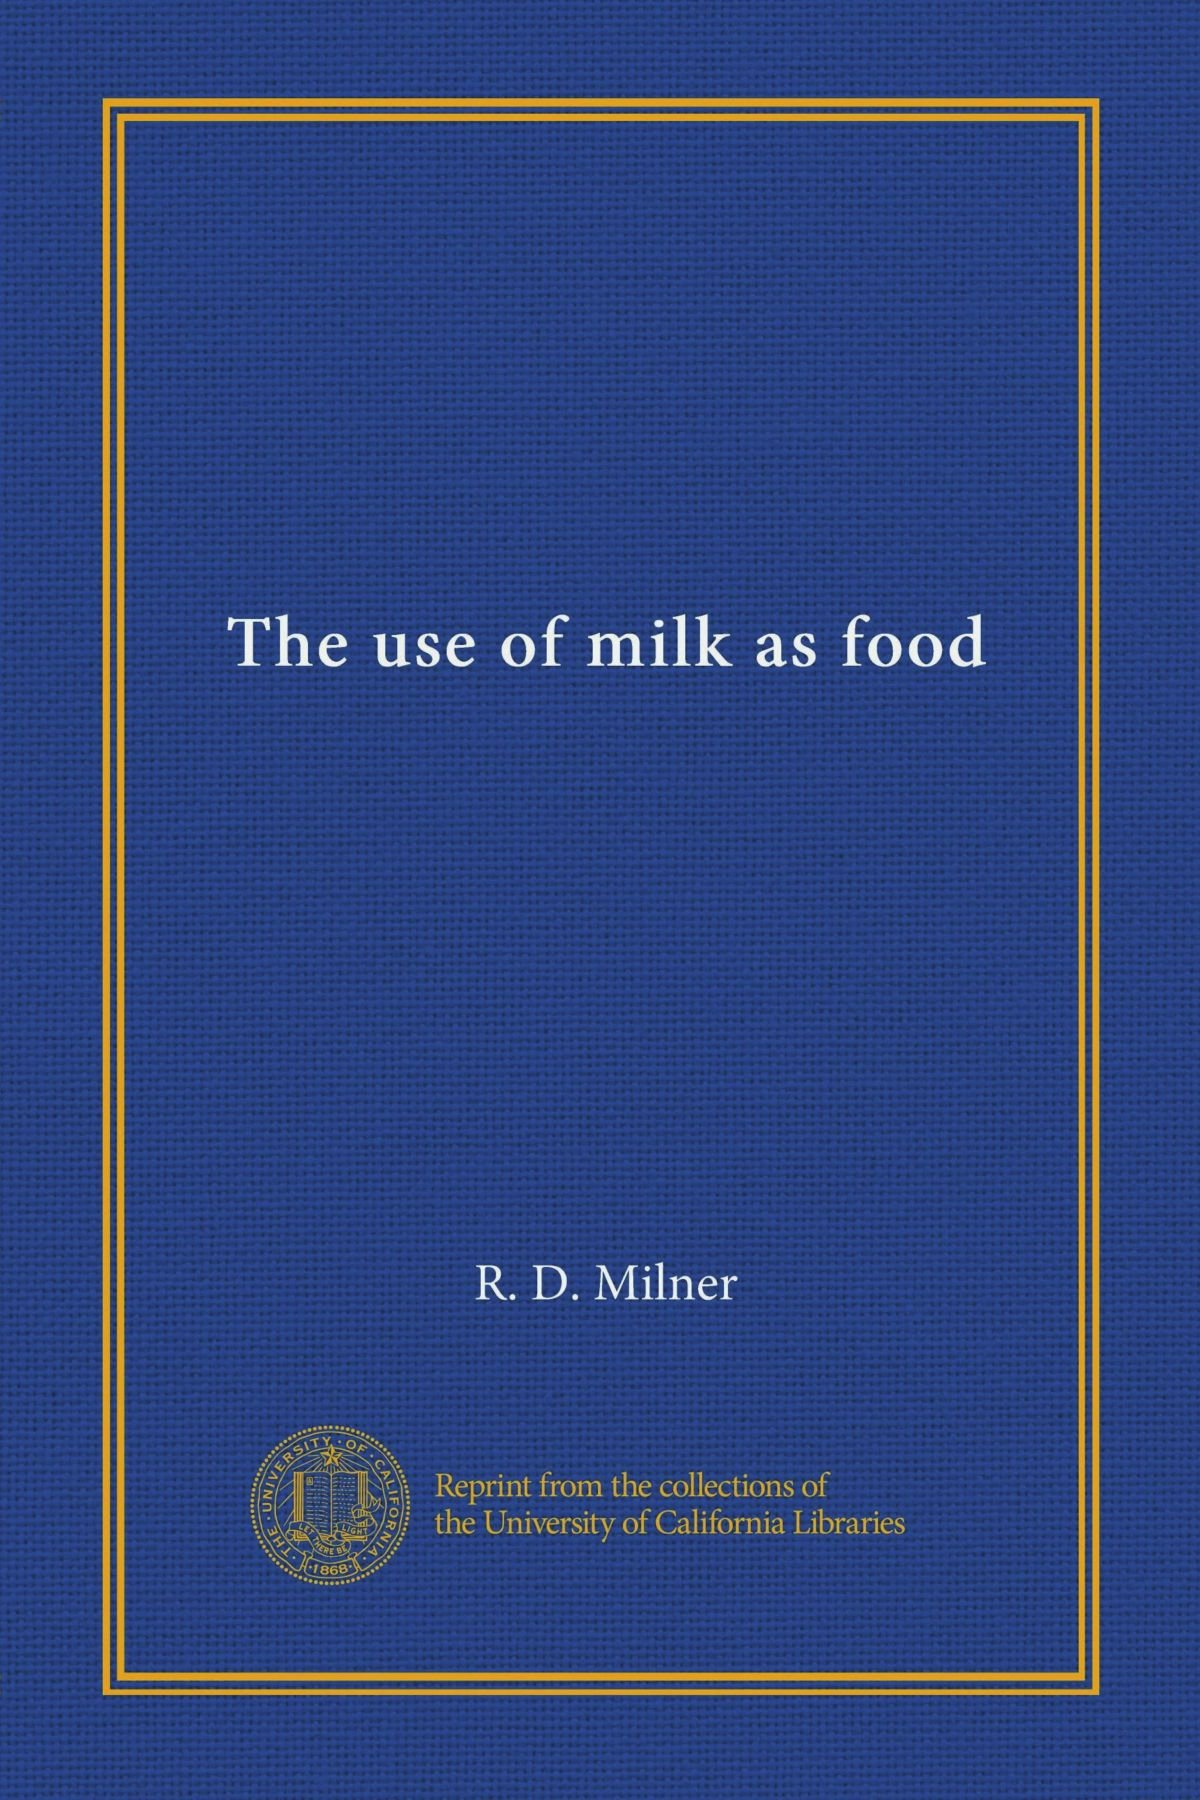 The use of milk as food pdf